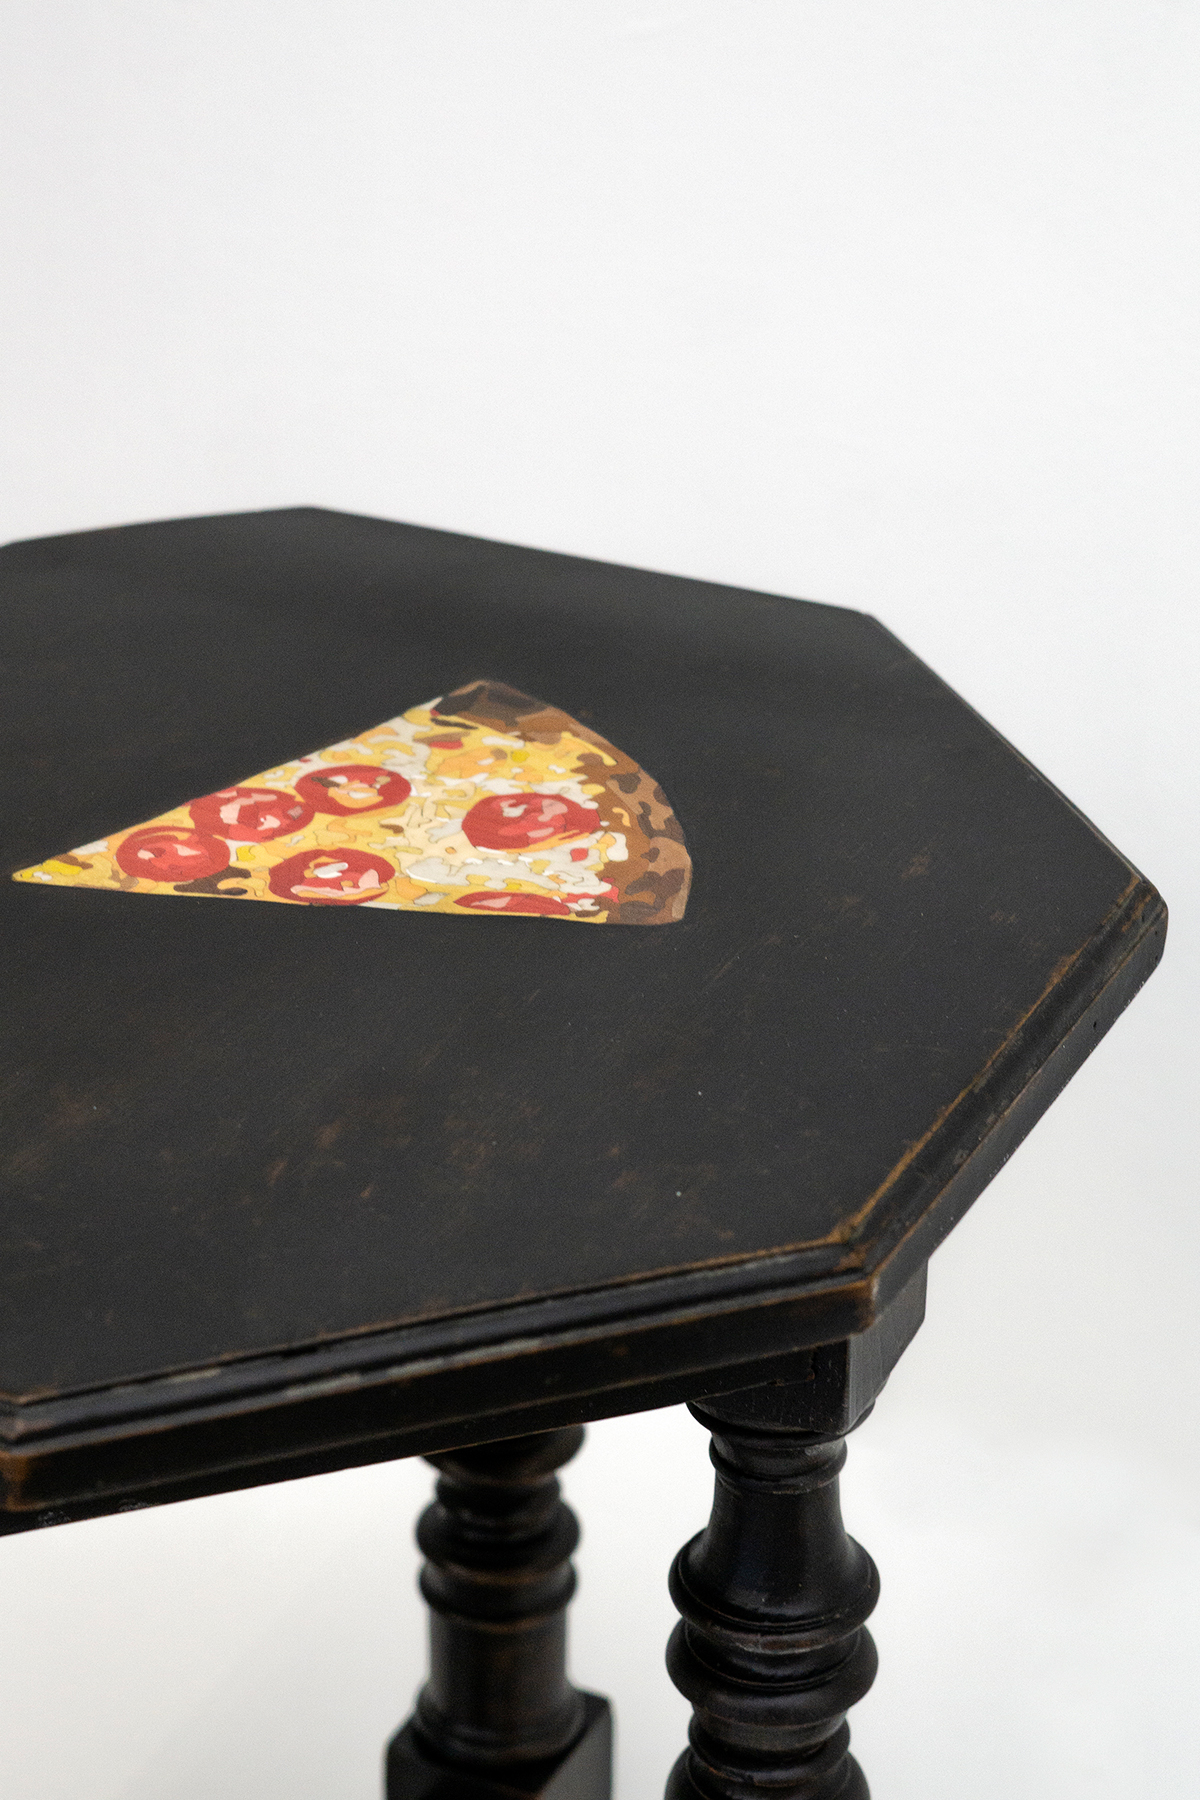 PIZZA - Marcantonio design